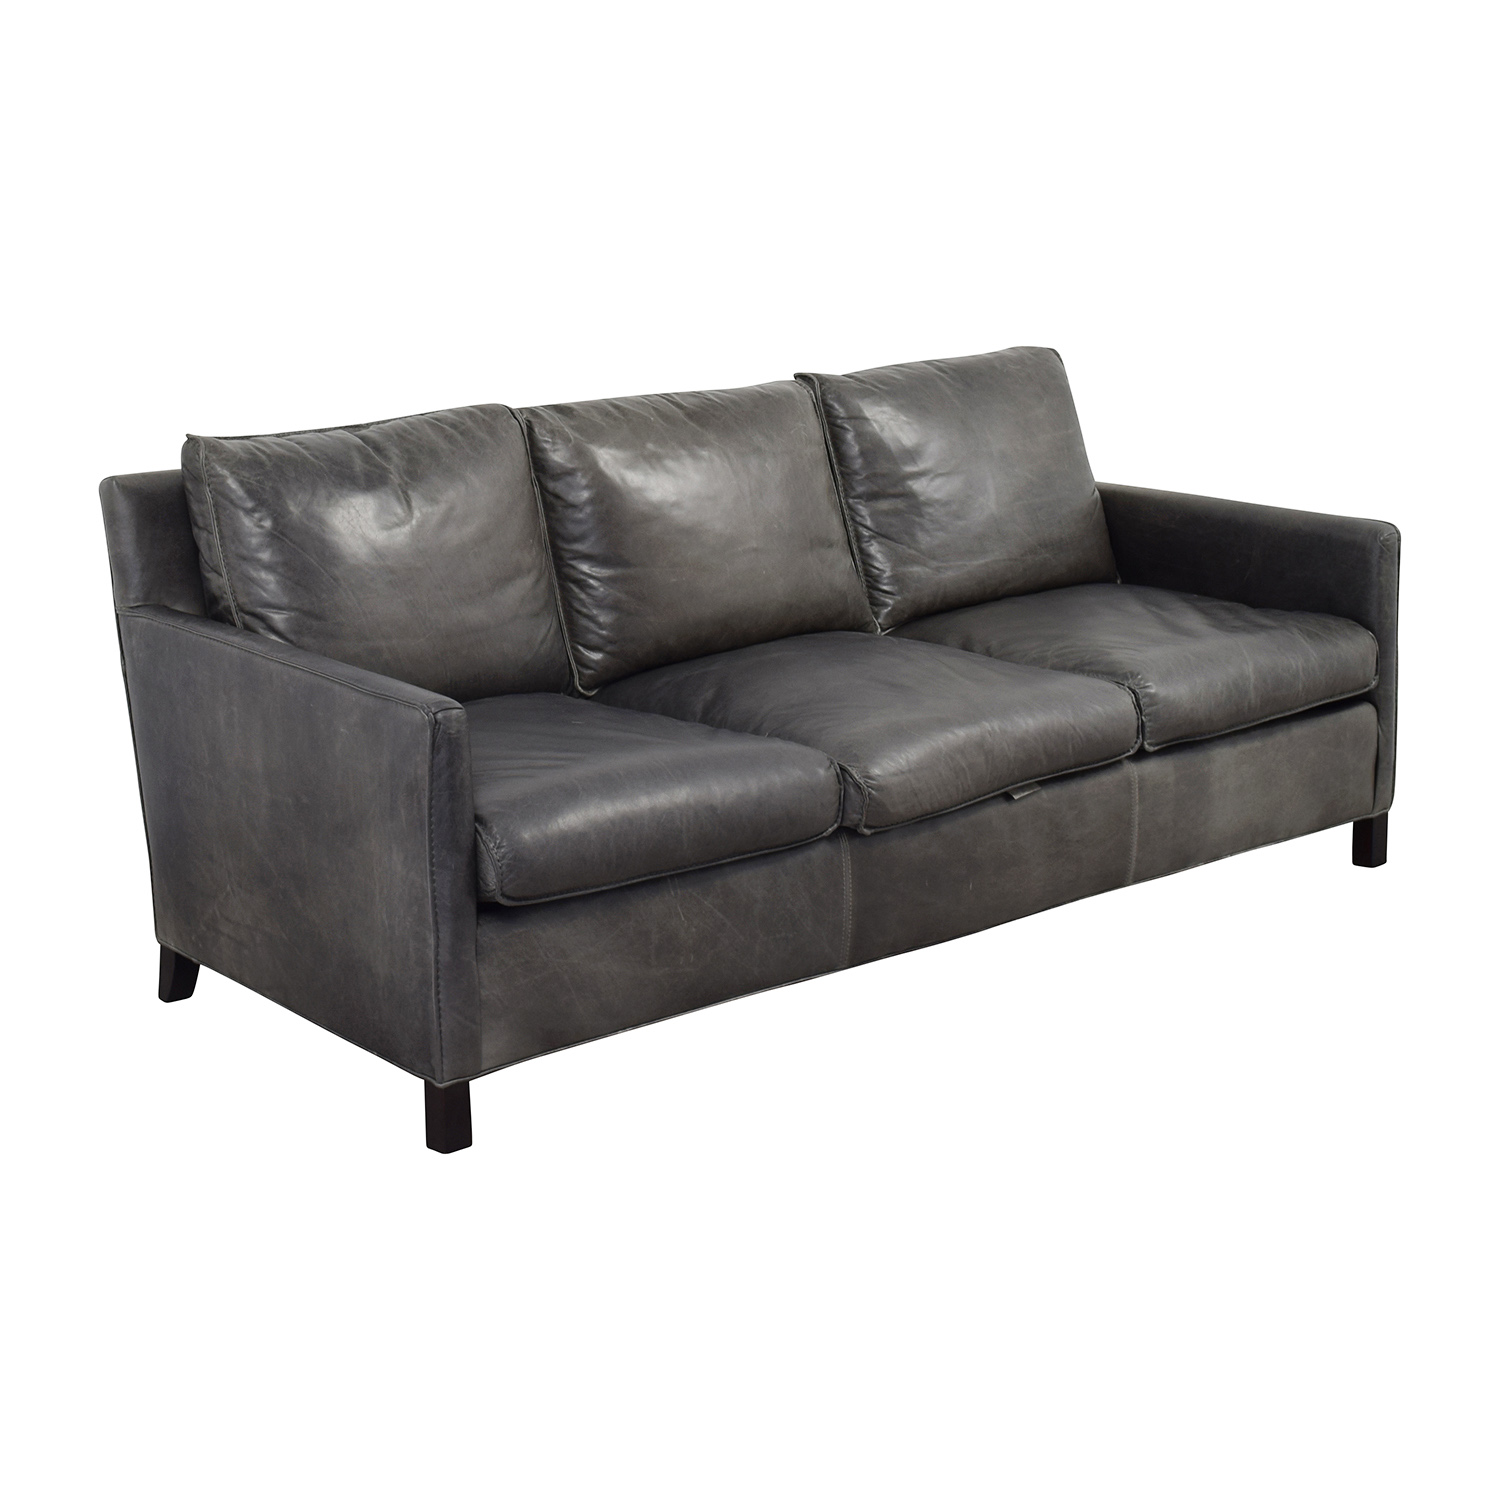 Room & Board Room & Board Bram Leather Sofa / Sofas